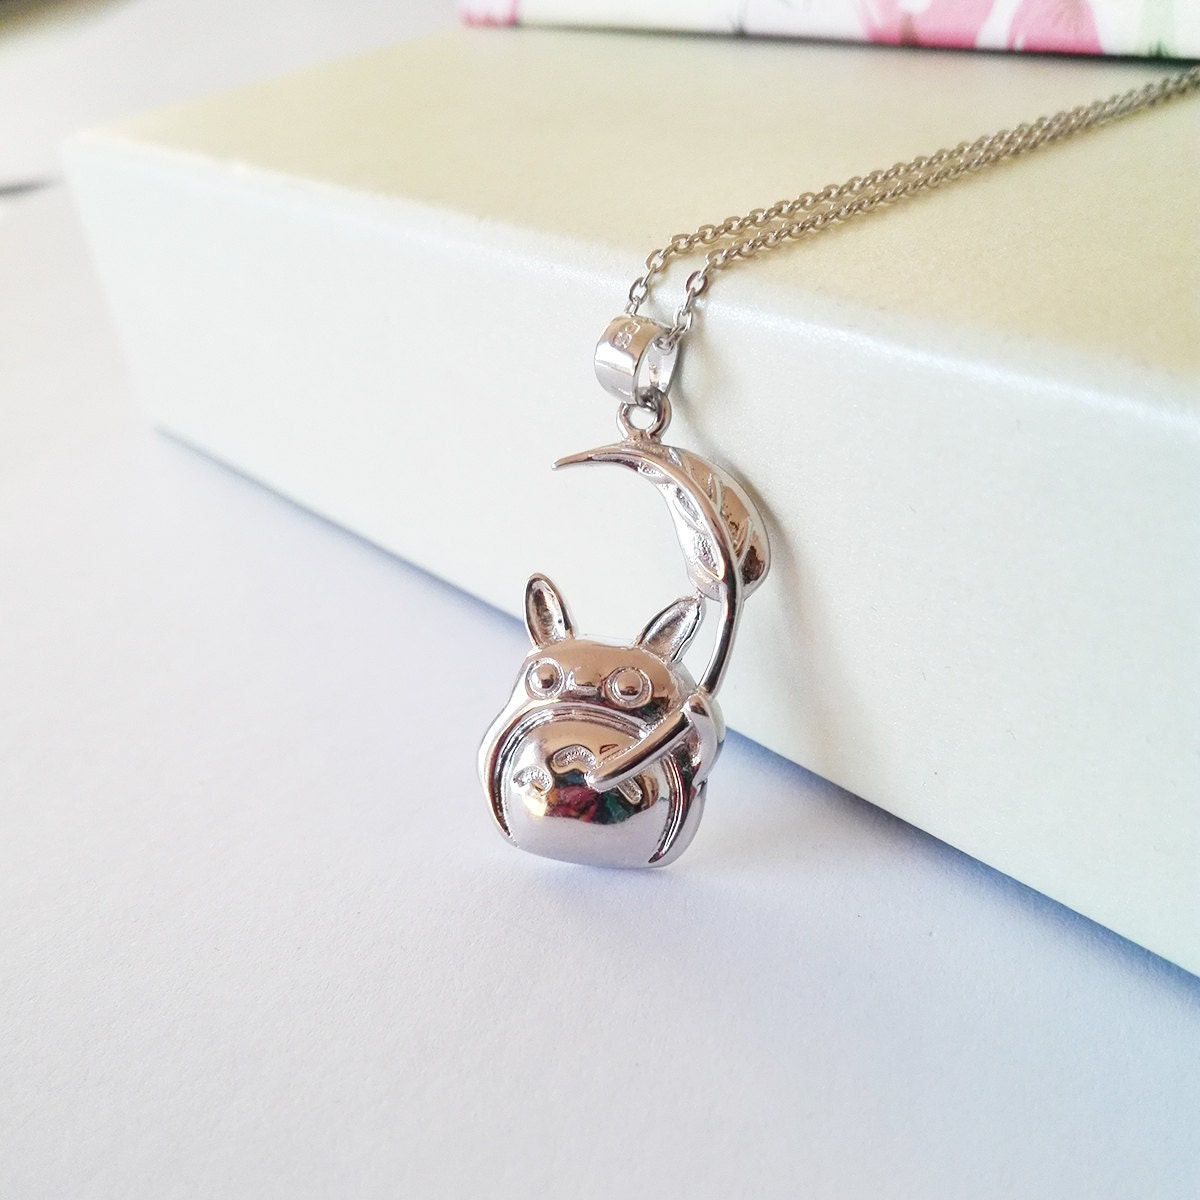 totoro necklace made with sterling 925 silver